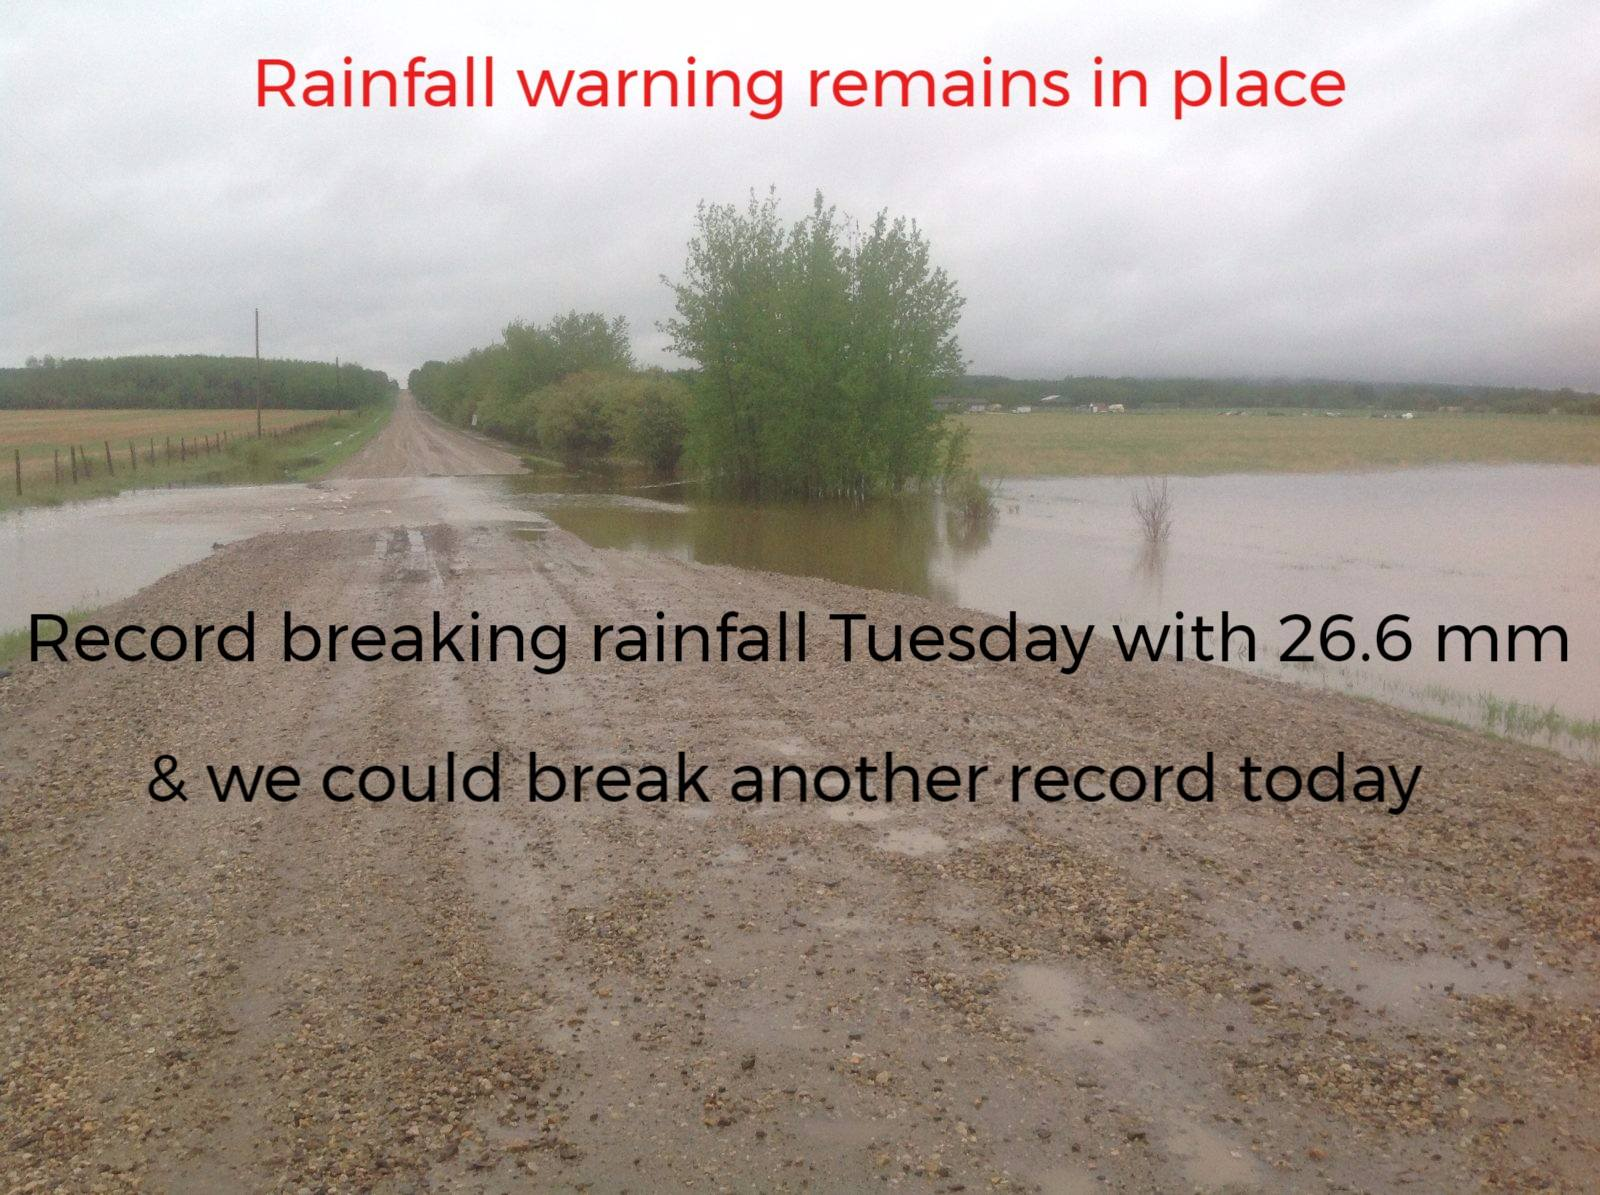 Rainfall record set Tuesday, could set another one today